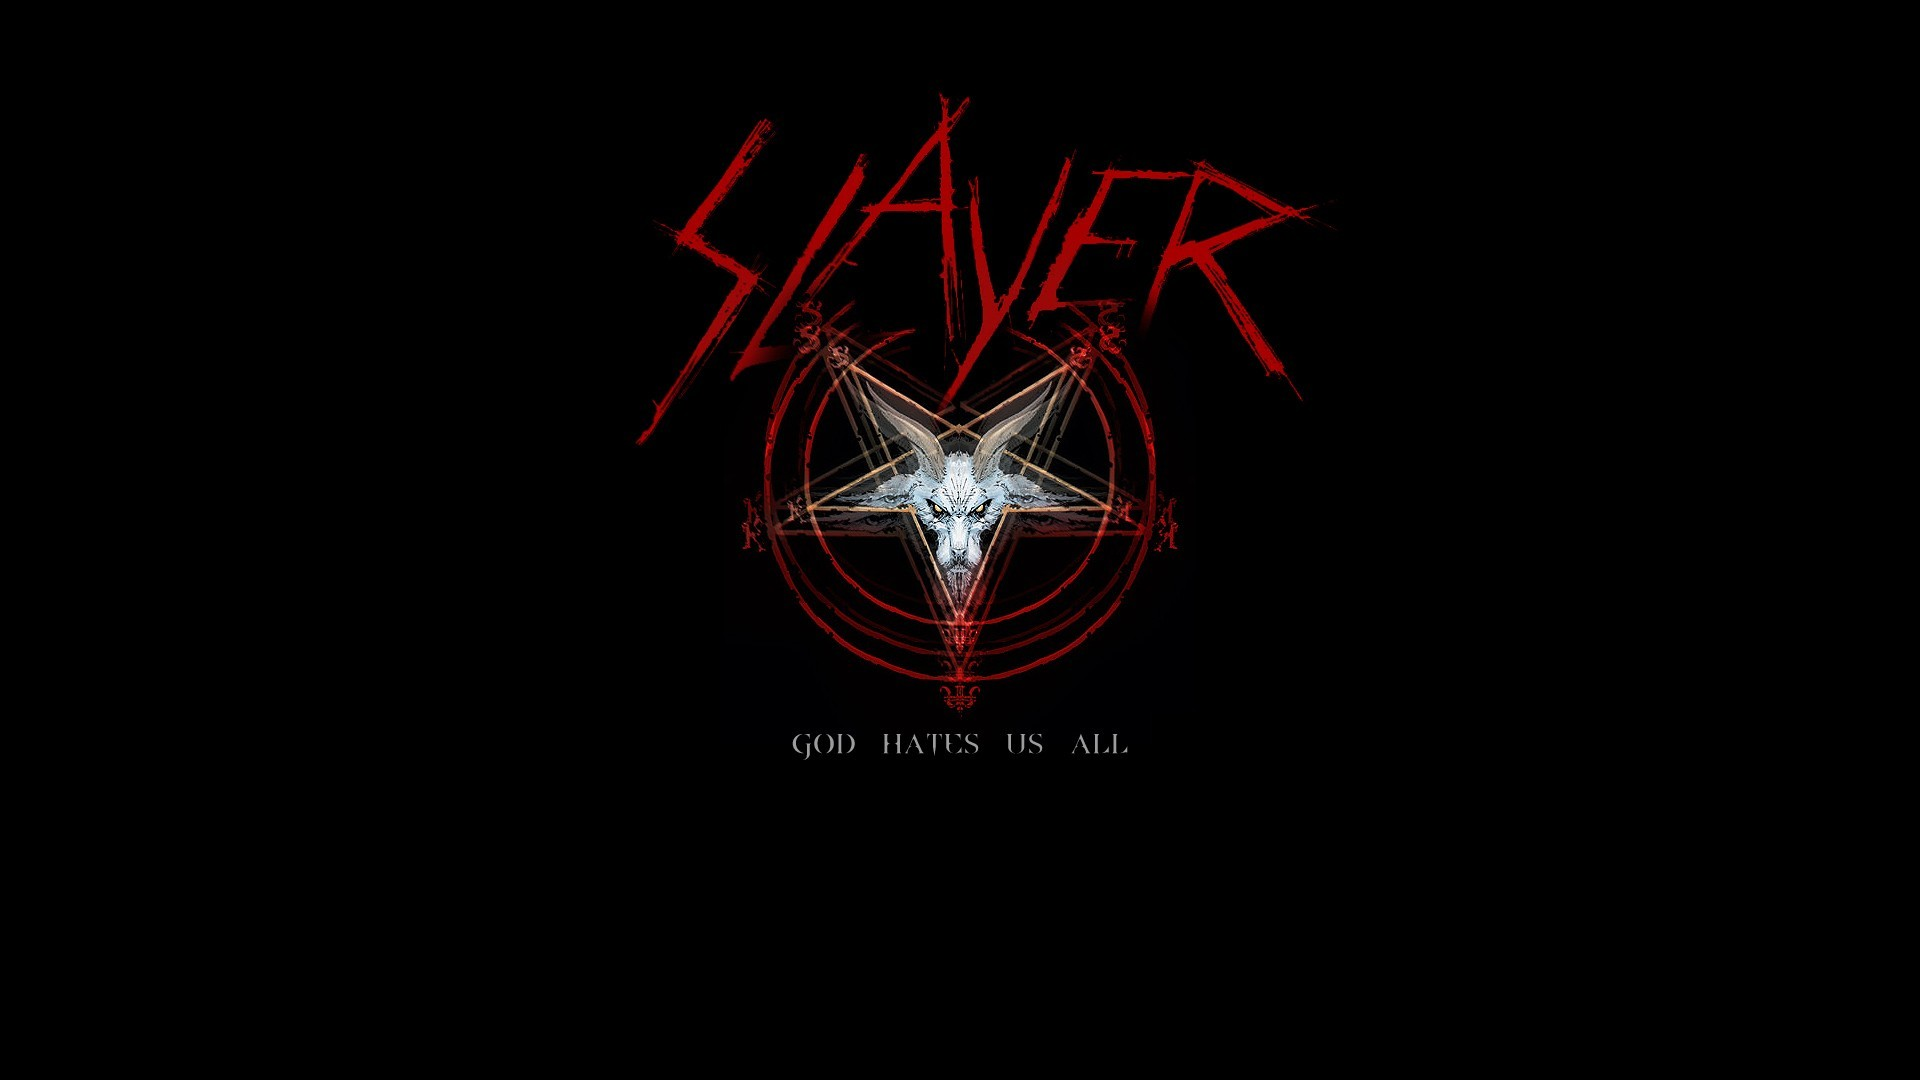 1920x1080  Logo Slayer Wallpaper HD 2 hd background hd screensavers hd  wallpaper .